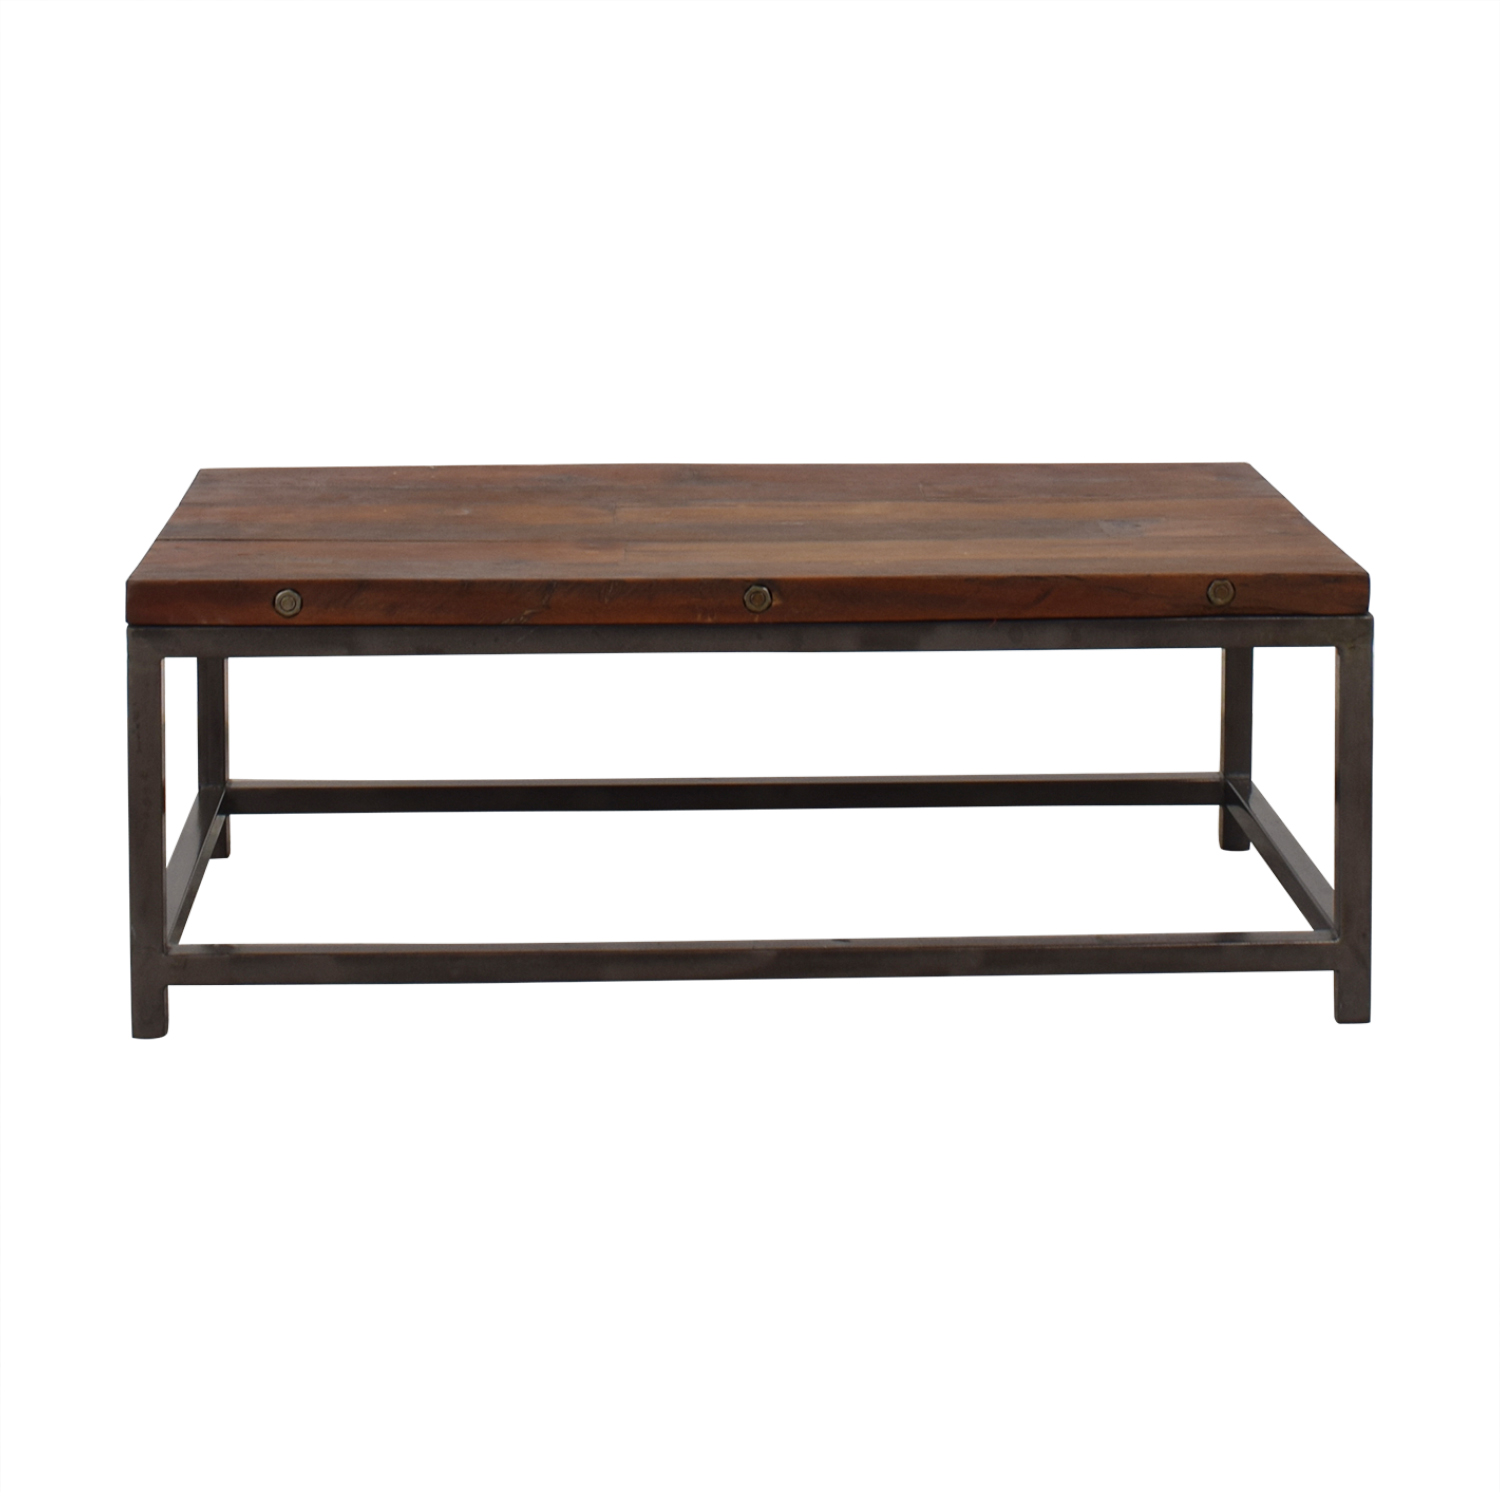 High Fashion Home High Fashion Home Oak Coffee Table second hand